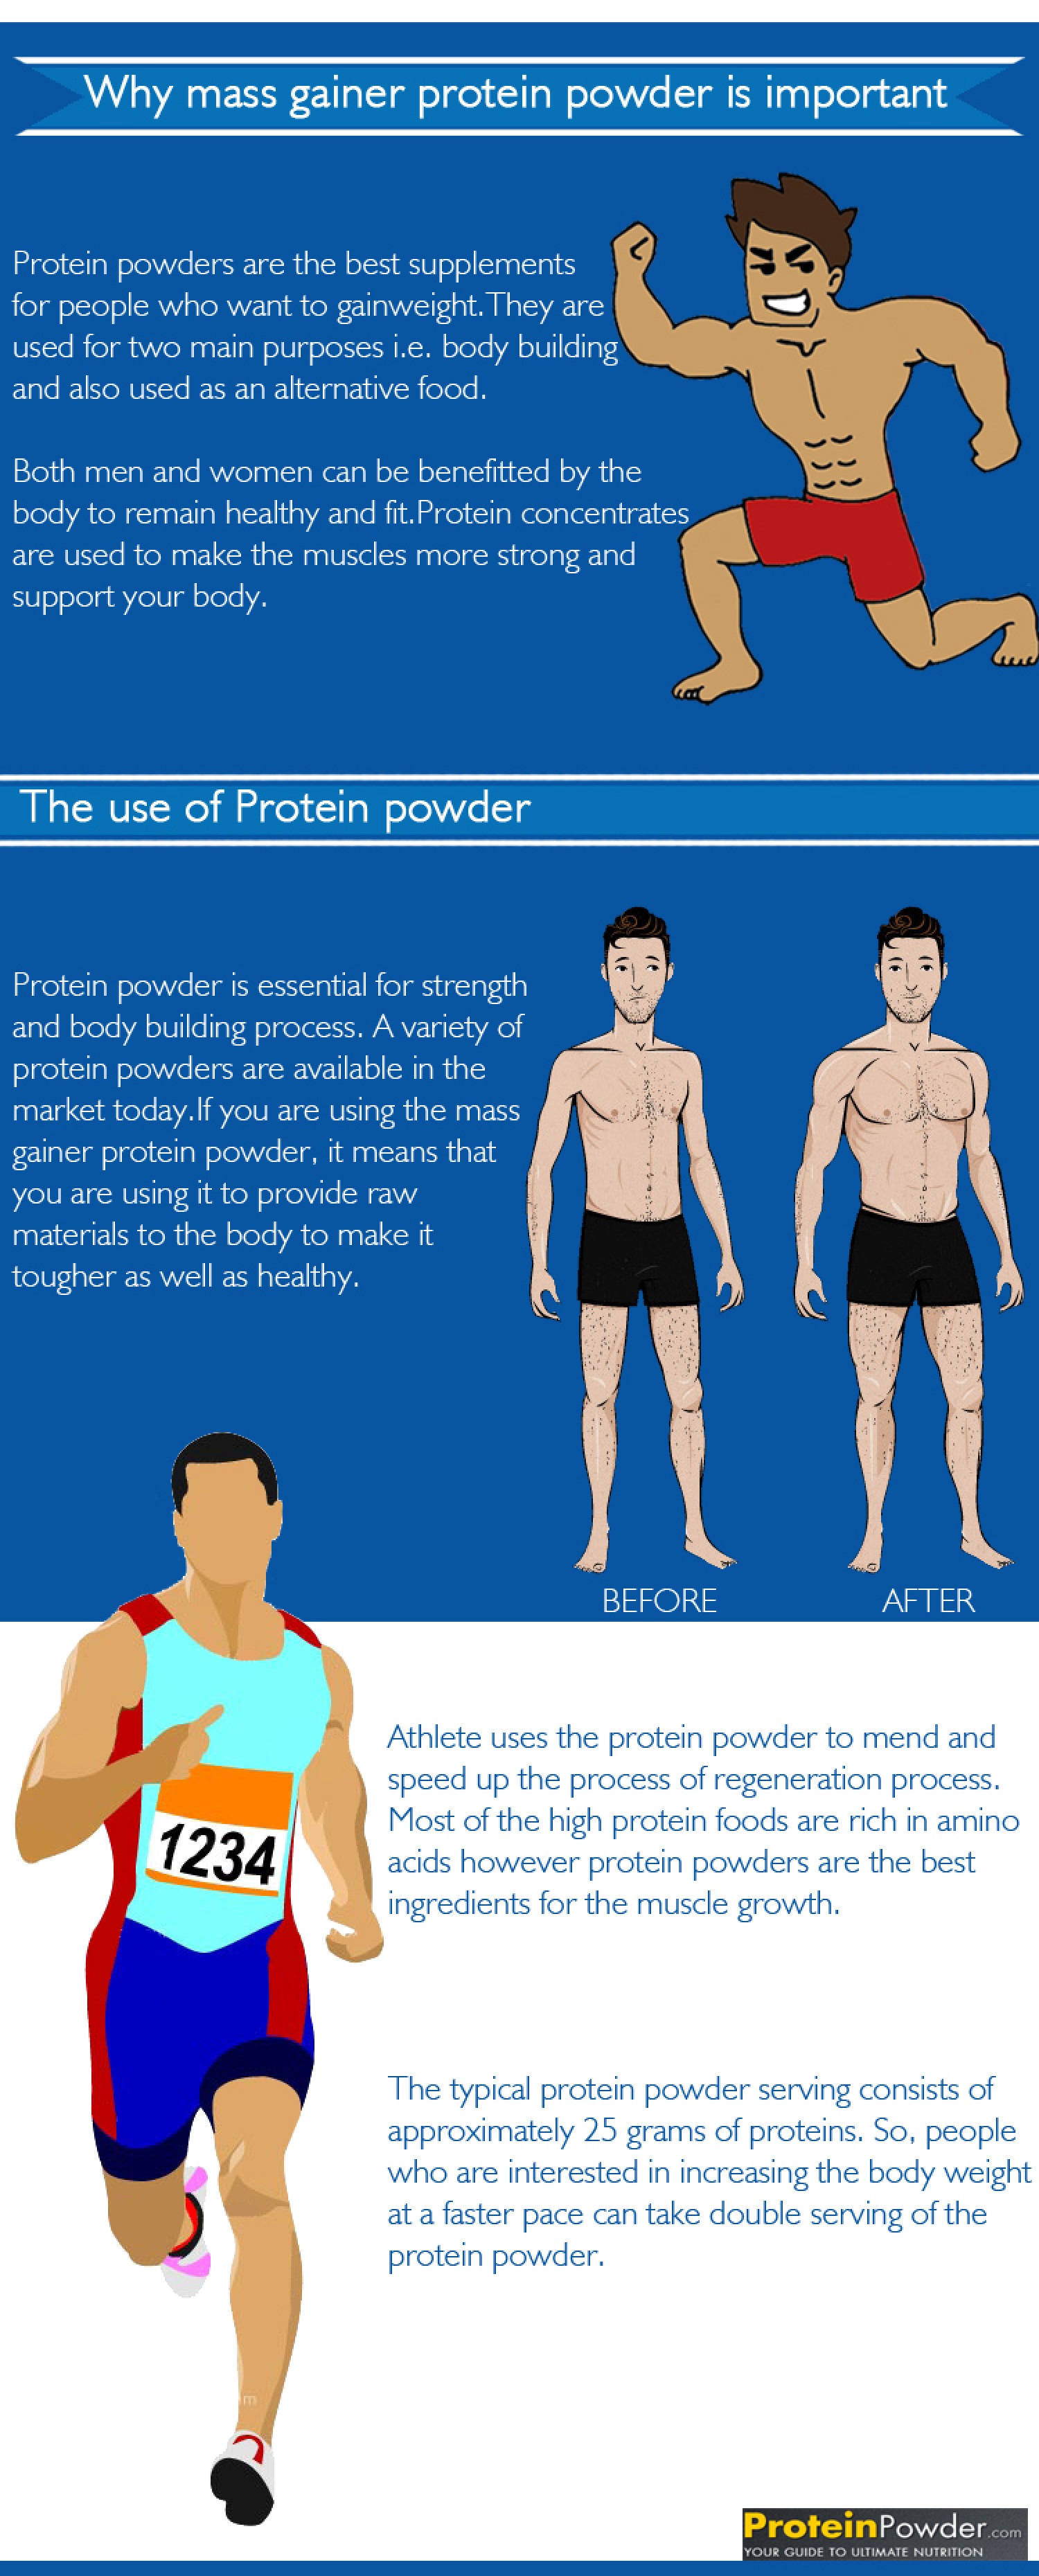 Why mass gainer protein powder is important Infographic